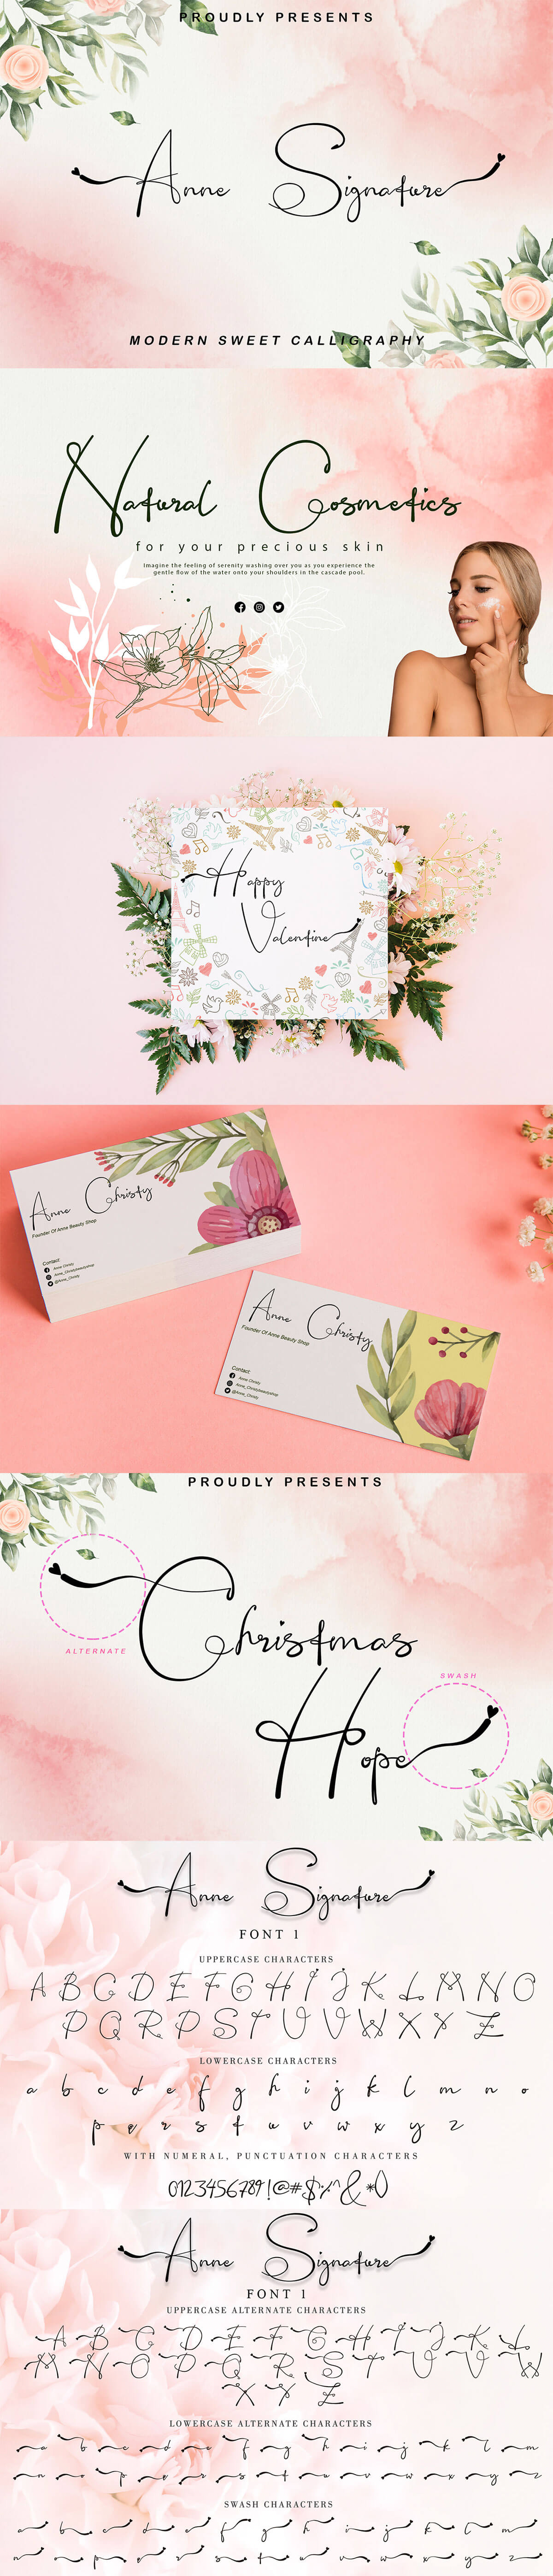 Anne Signature Calligraphy Font